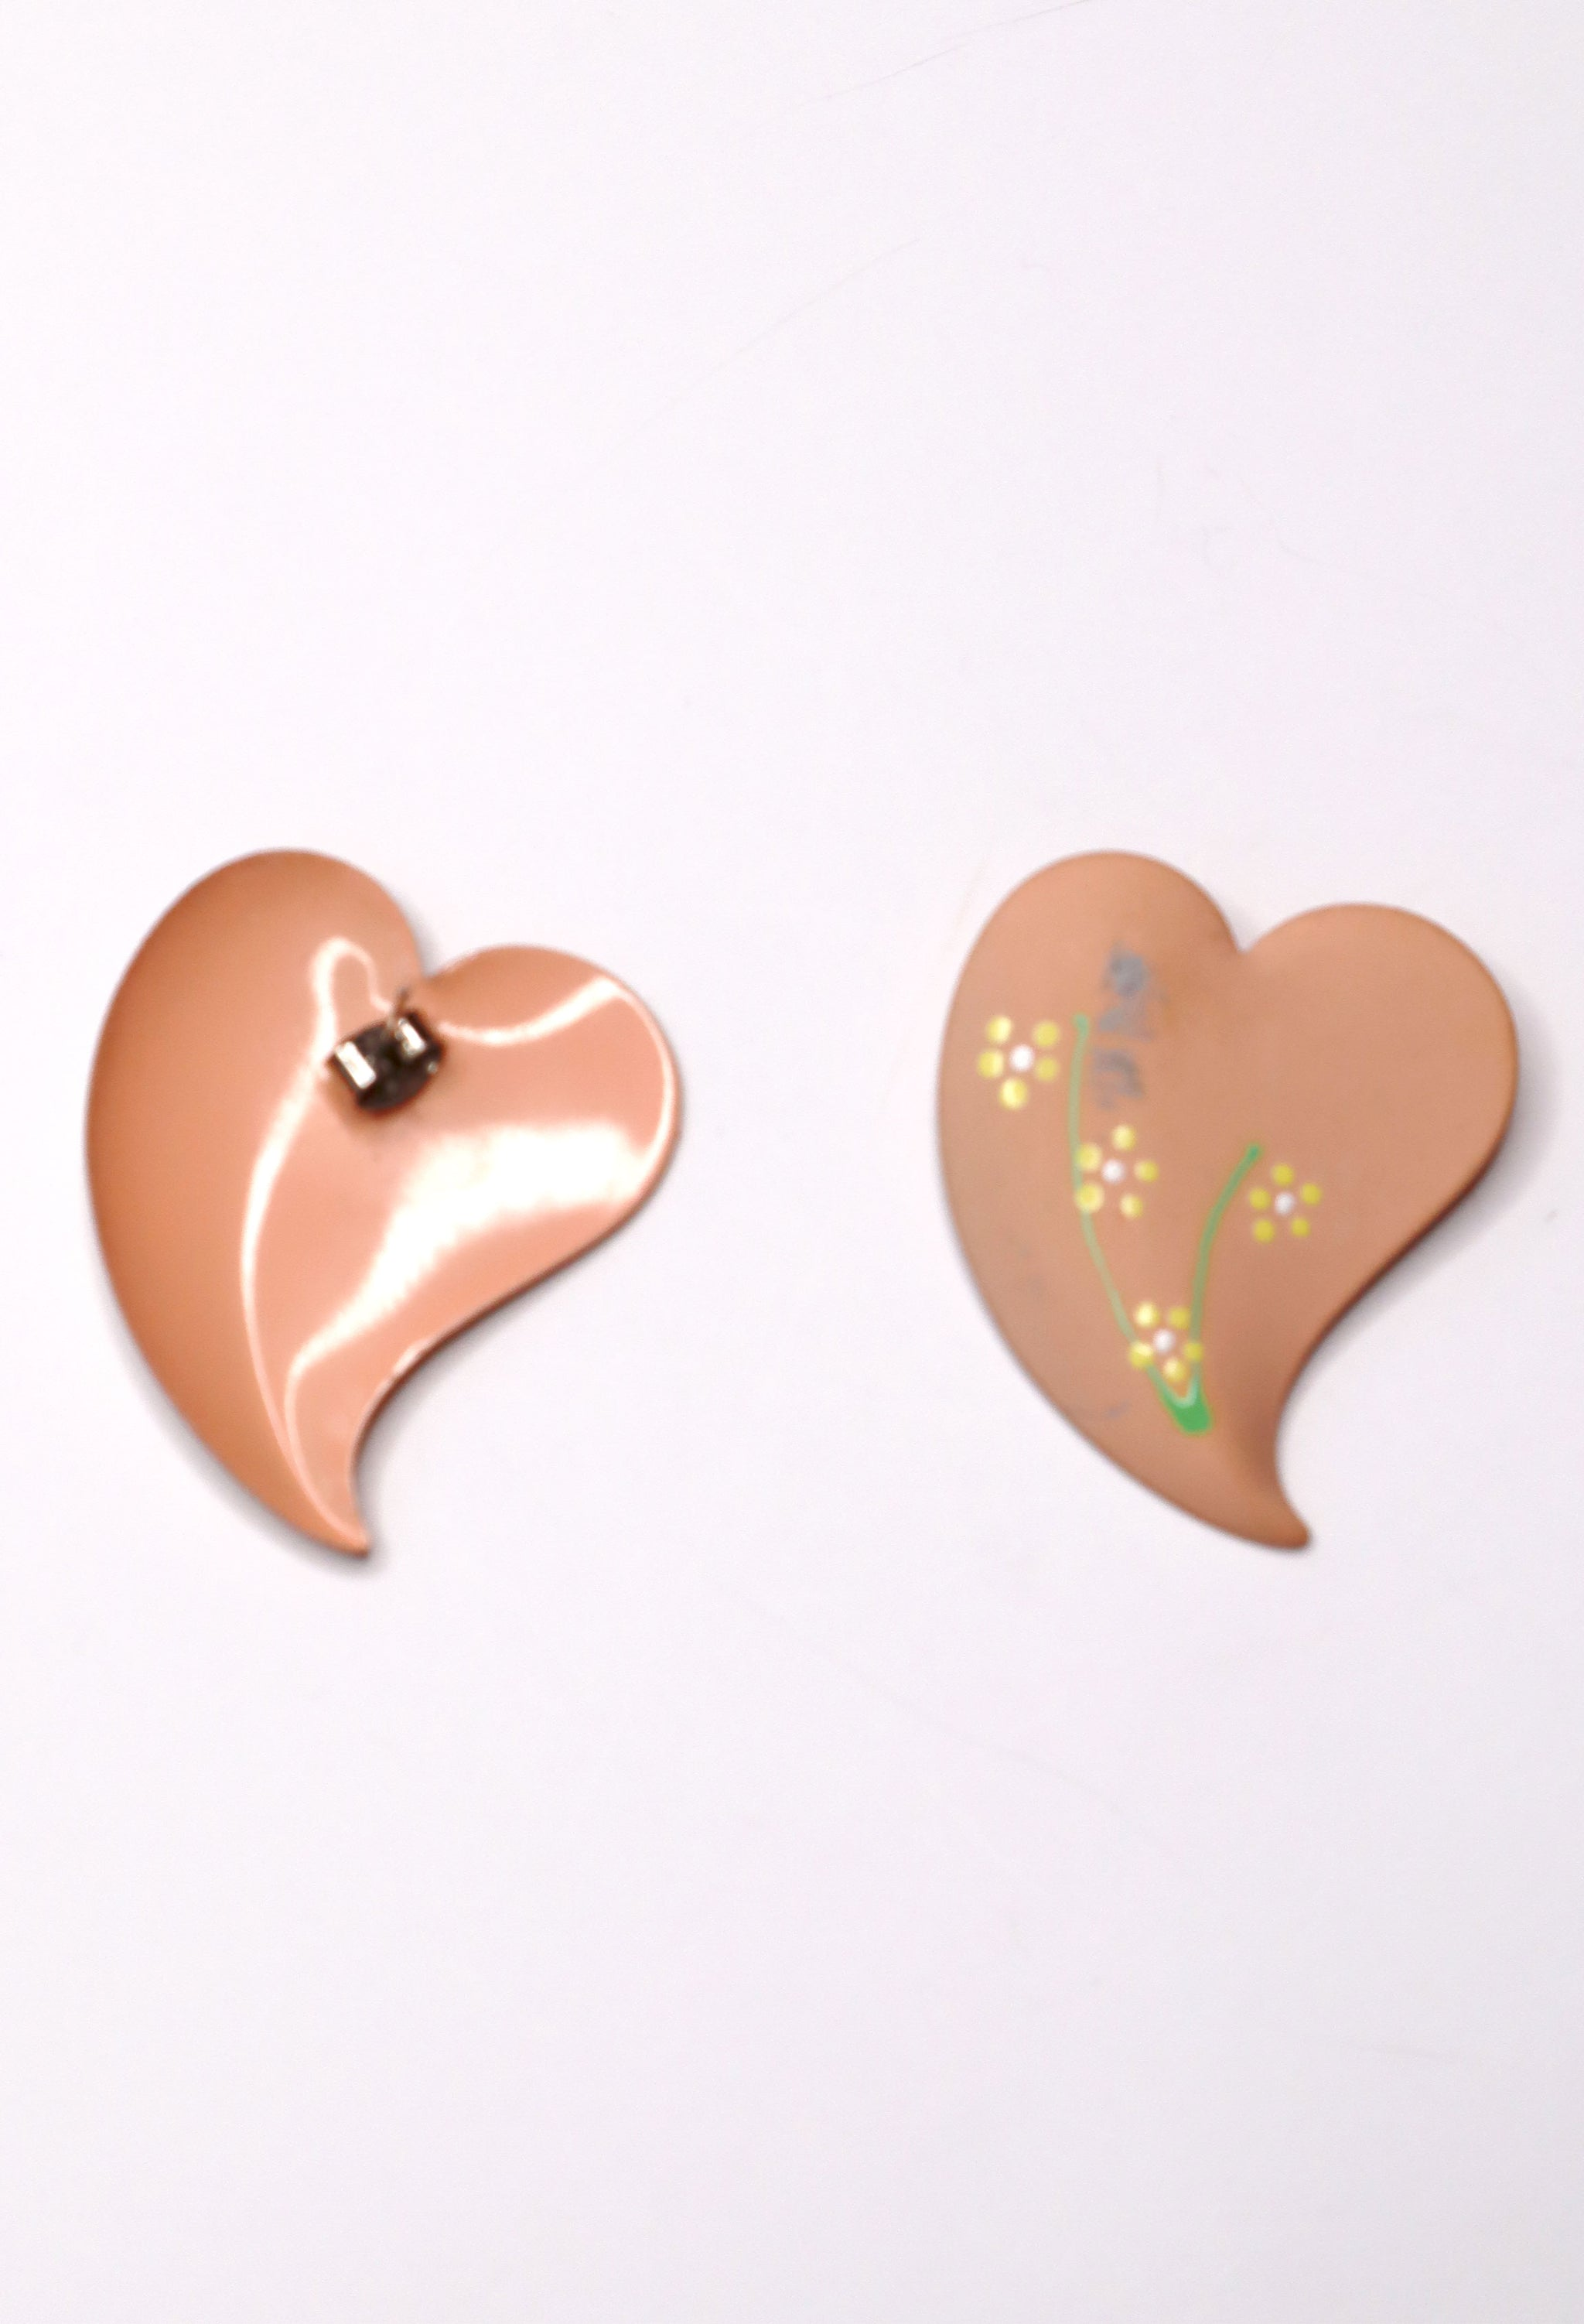 Vintage 70s Peachy Heart Earrings